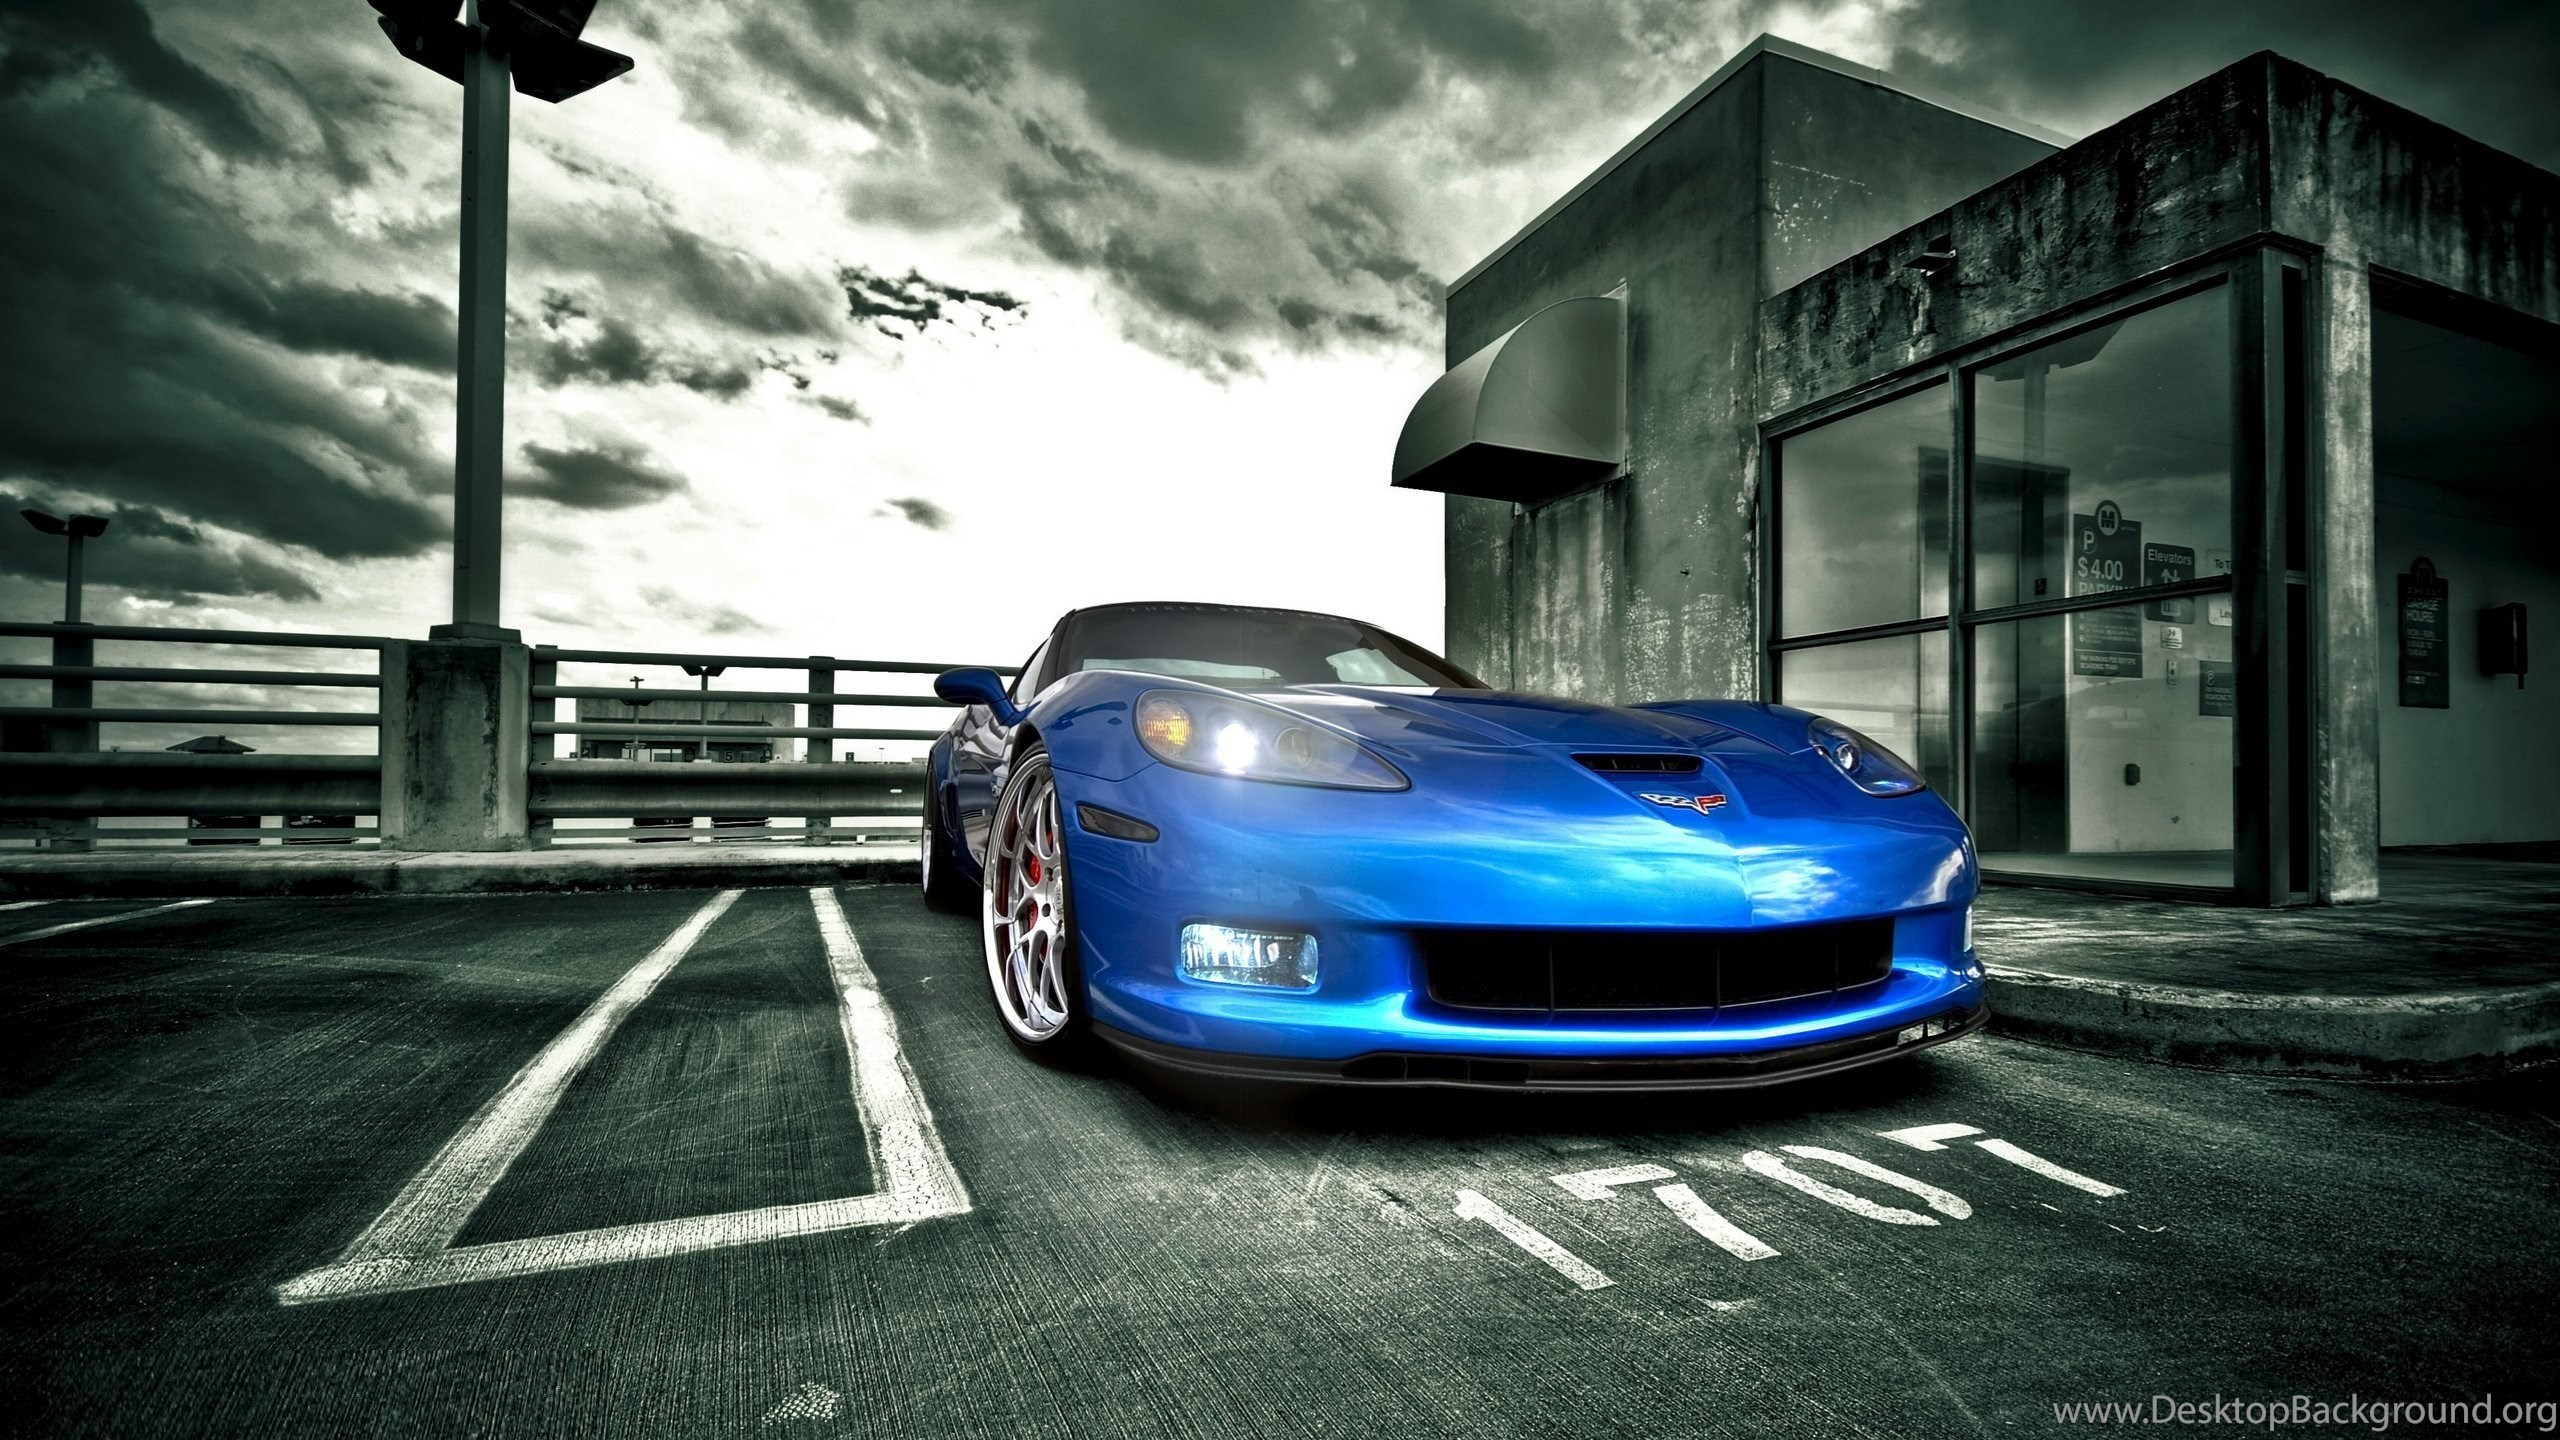 Sport Car Backgrounds Hd Wallpapers Hd Great Images Desktop Background